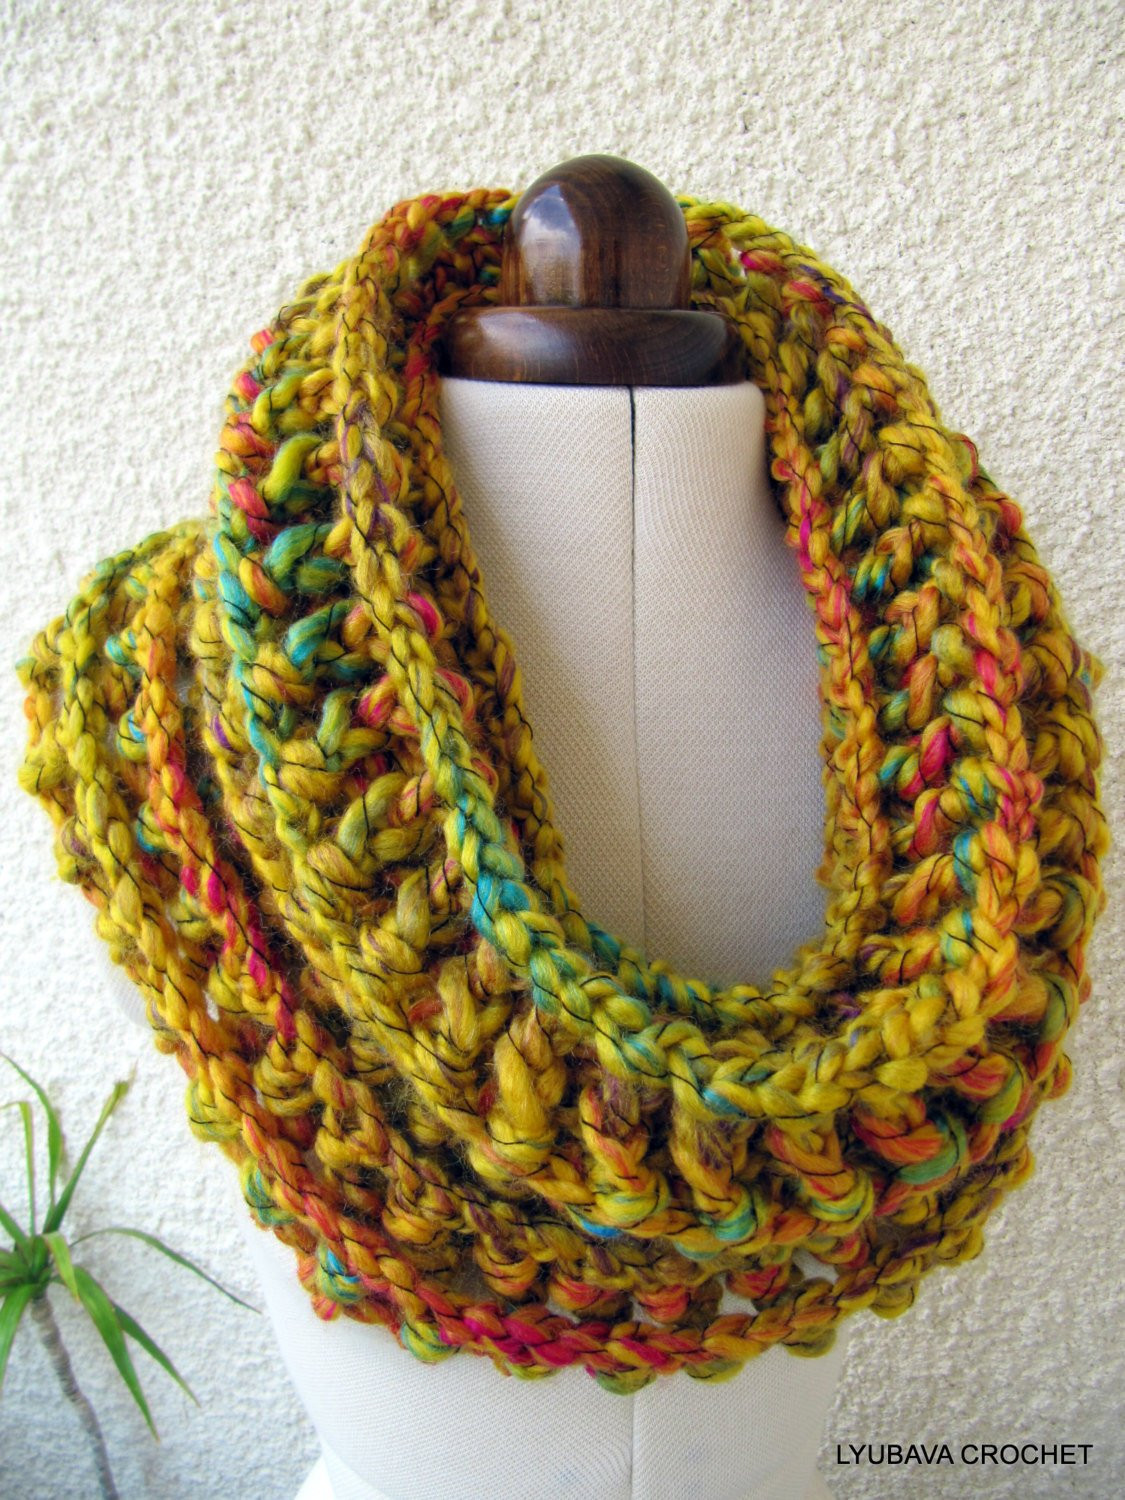 Crochet Cowl Scarf Inspirational Crochet Cowl Pattern Mustard Cowl Chunky Scarf Fast Easy Of Awesome 42 Pics Crochet Cowl Scarf